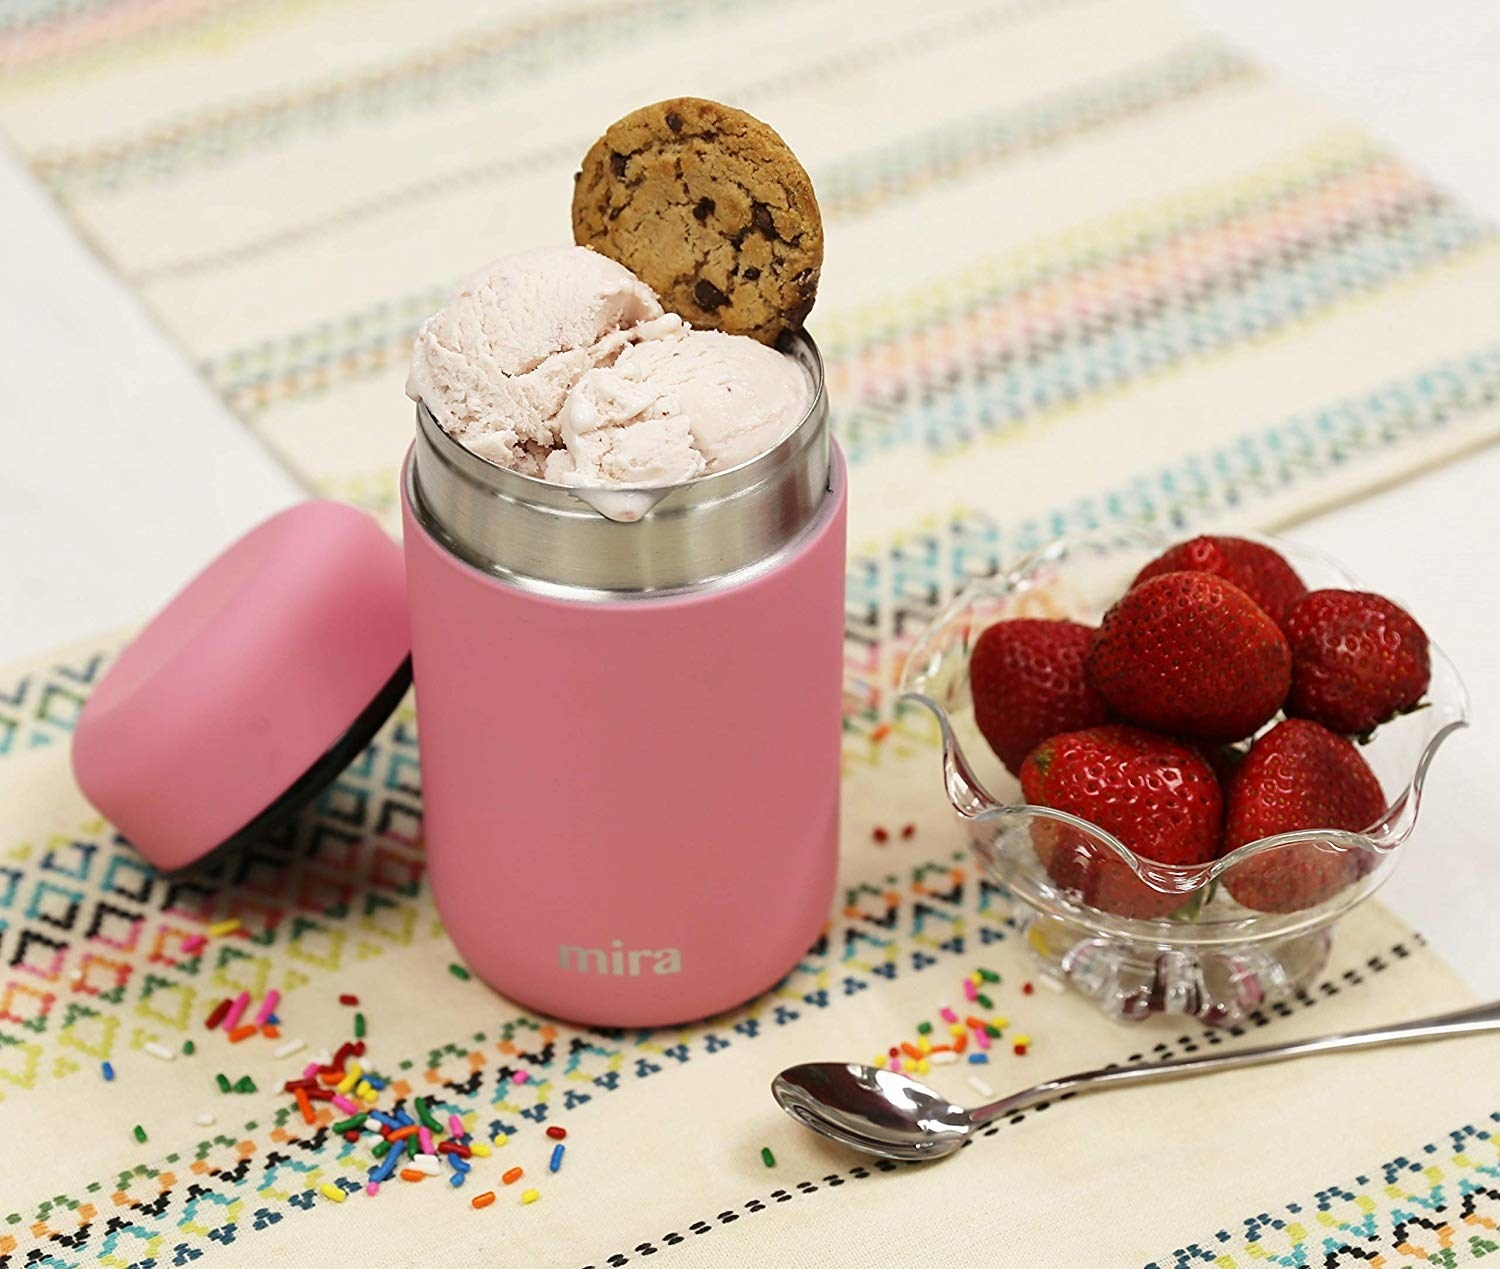 the pink thermos with strawberry ice cream in it